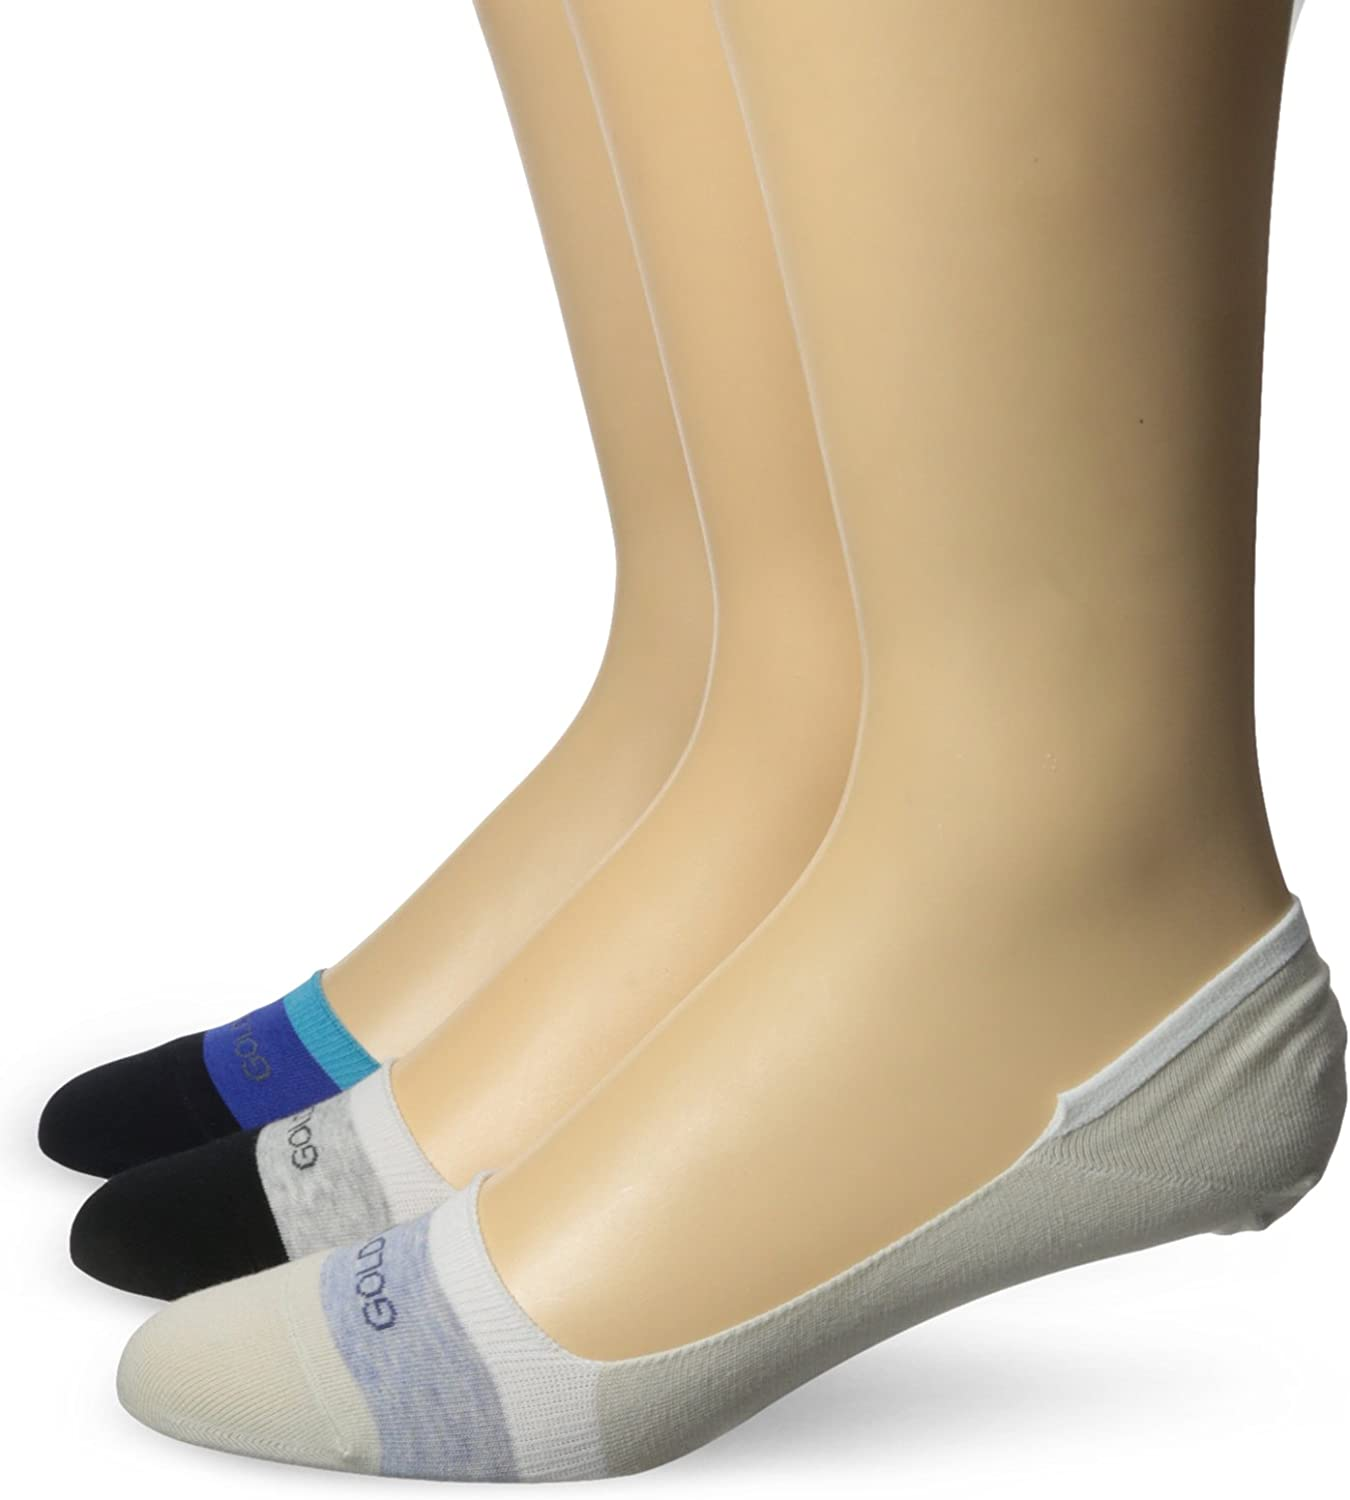 Gold Toe Men's Color Block Penney No Show Extended Size Sock 3-Pack